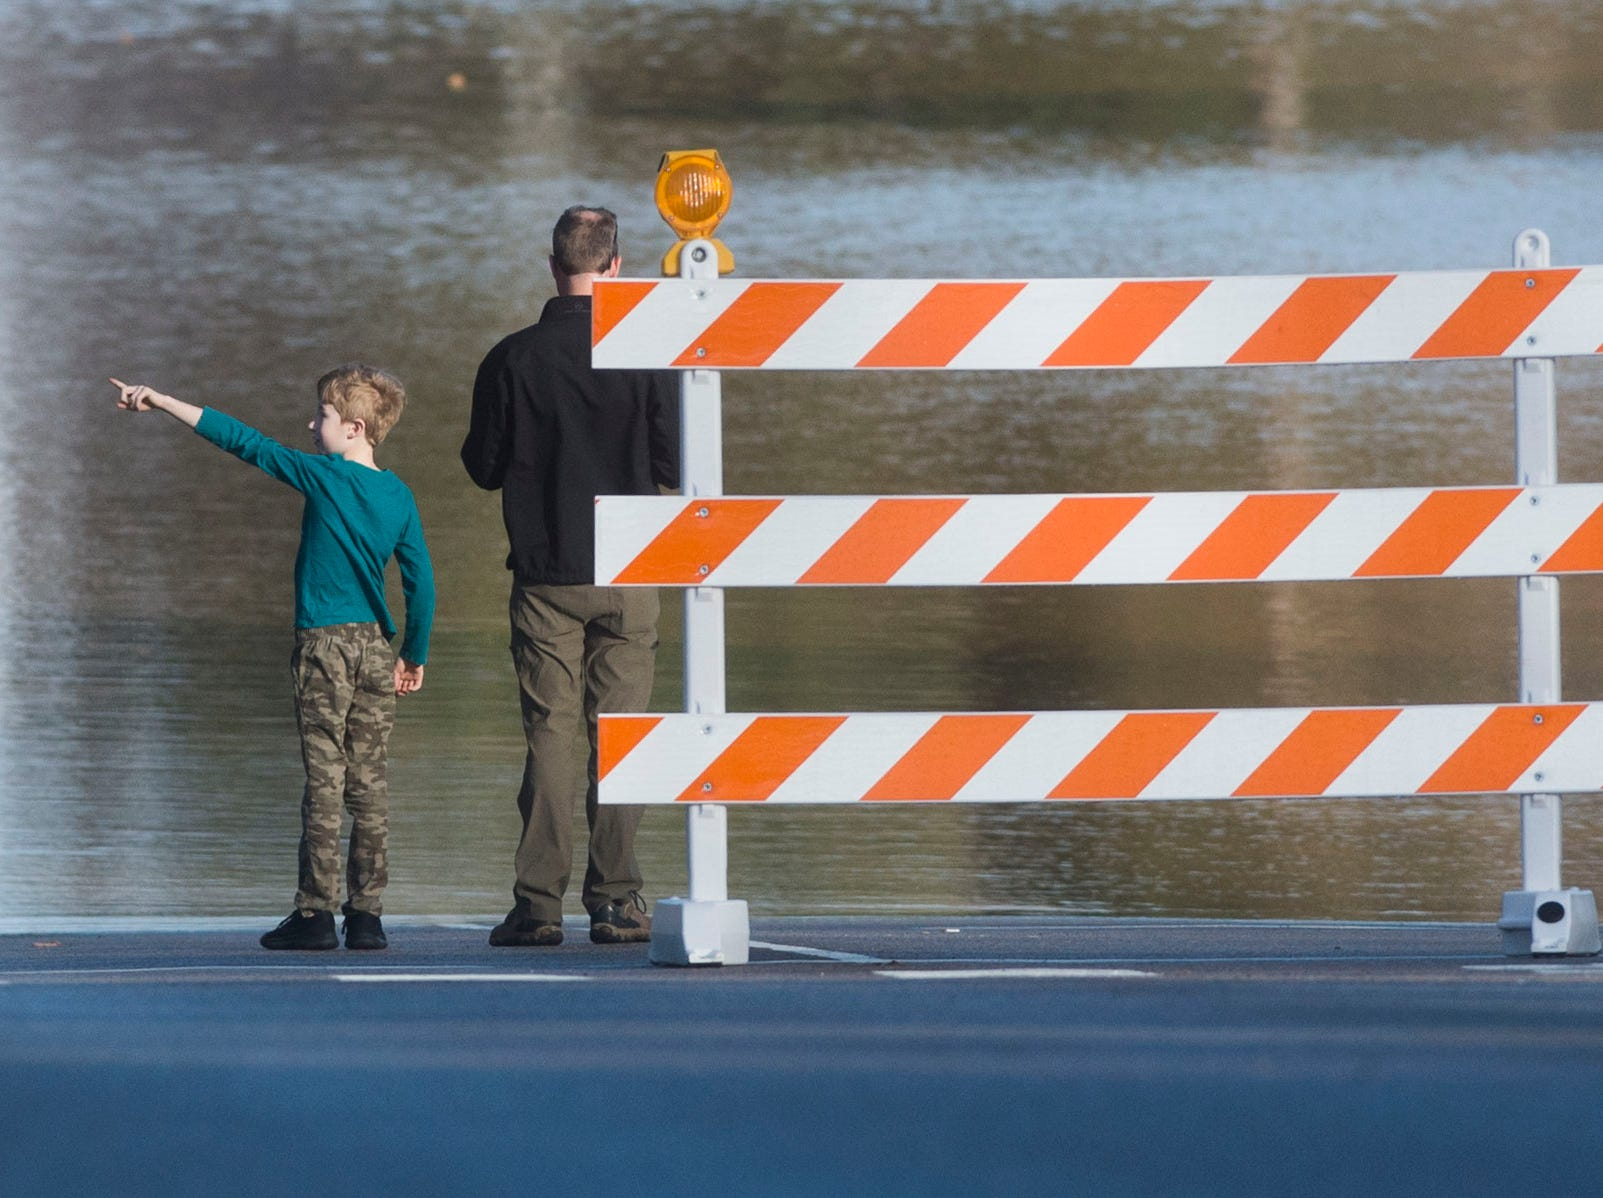 Harrison McReynolds, 8, of Knoxville, and his father Matthew, observe the continued flooding on South Peters and Ebenezer Road in West Knoxville Sunday, Feb. 24, 2019.